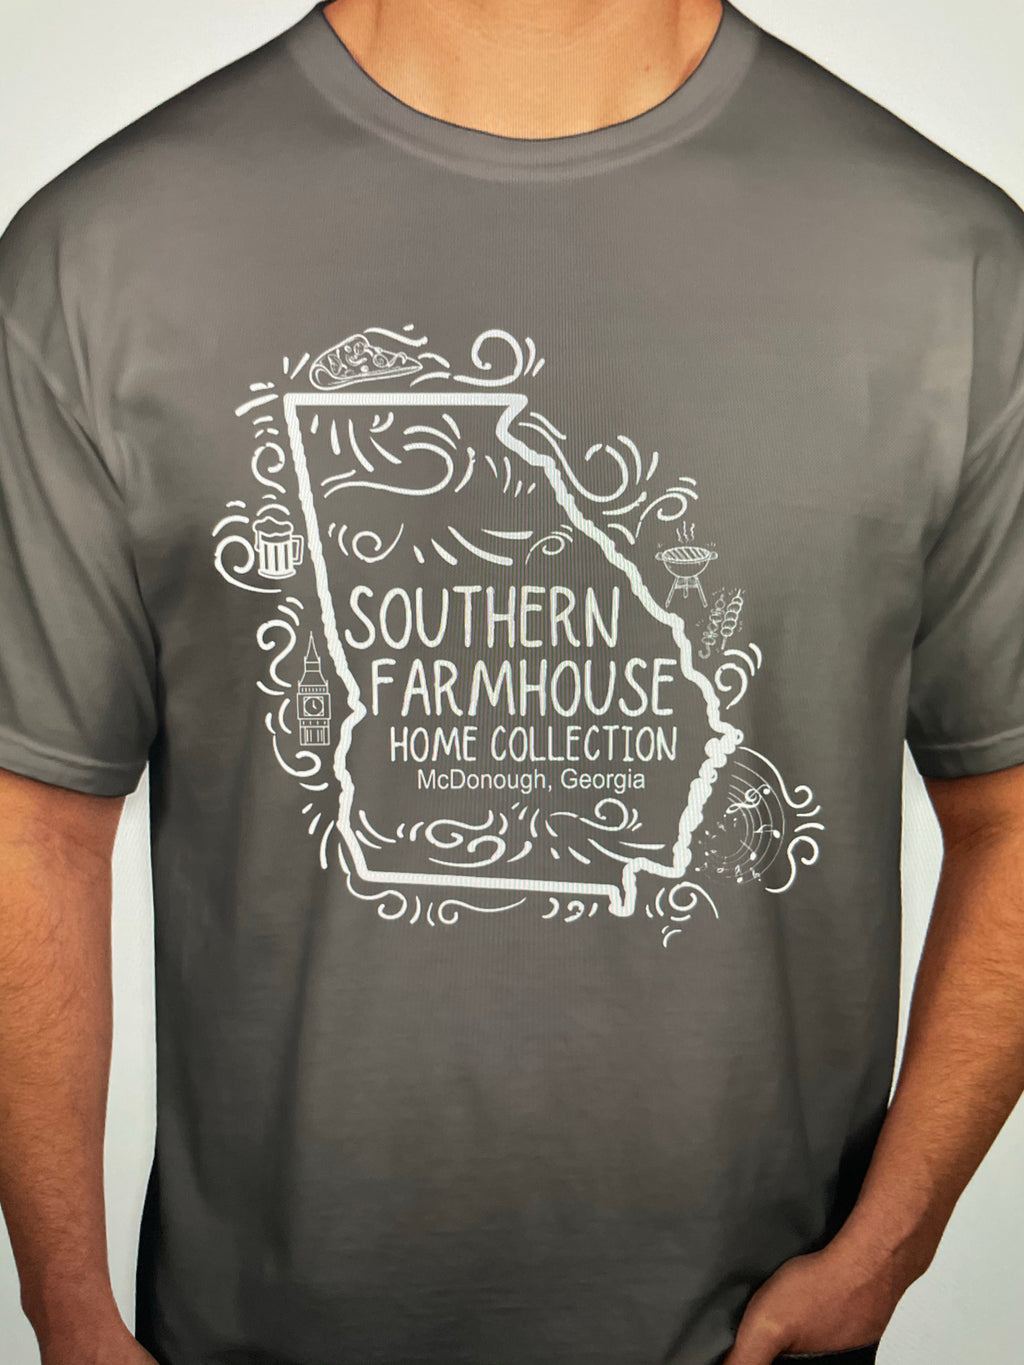 Southern Farmhouse T-Shirt